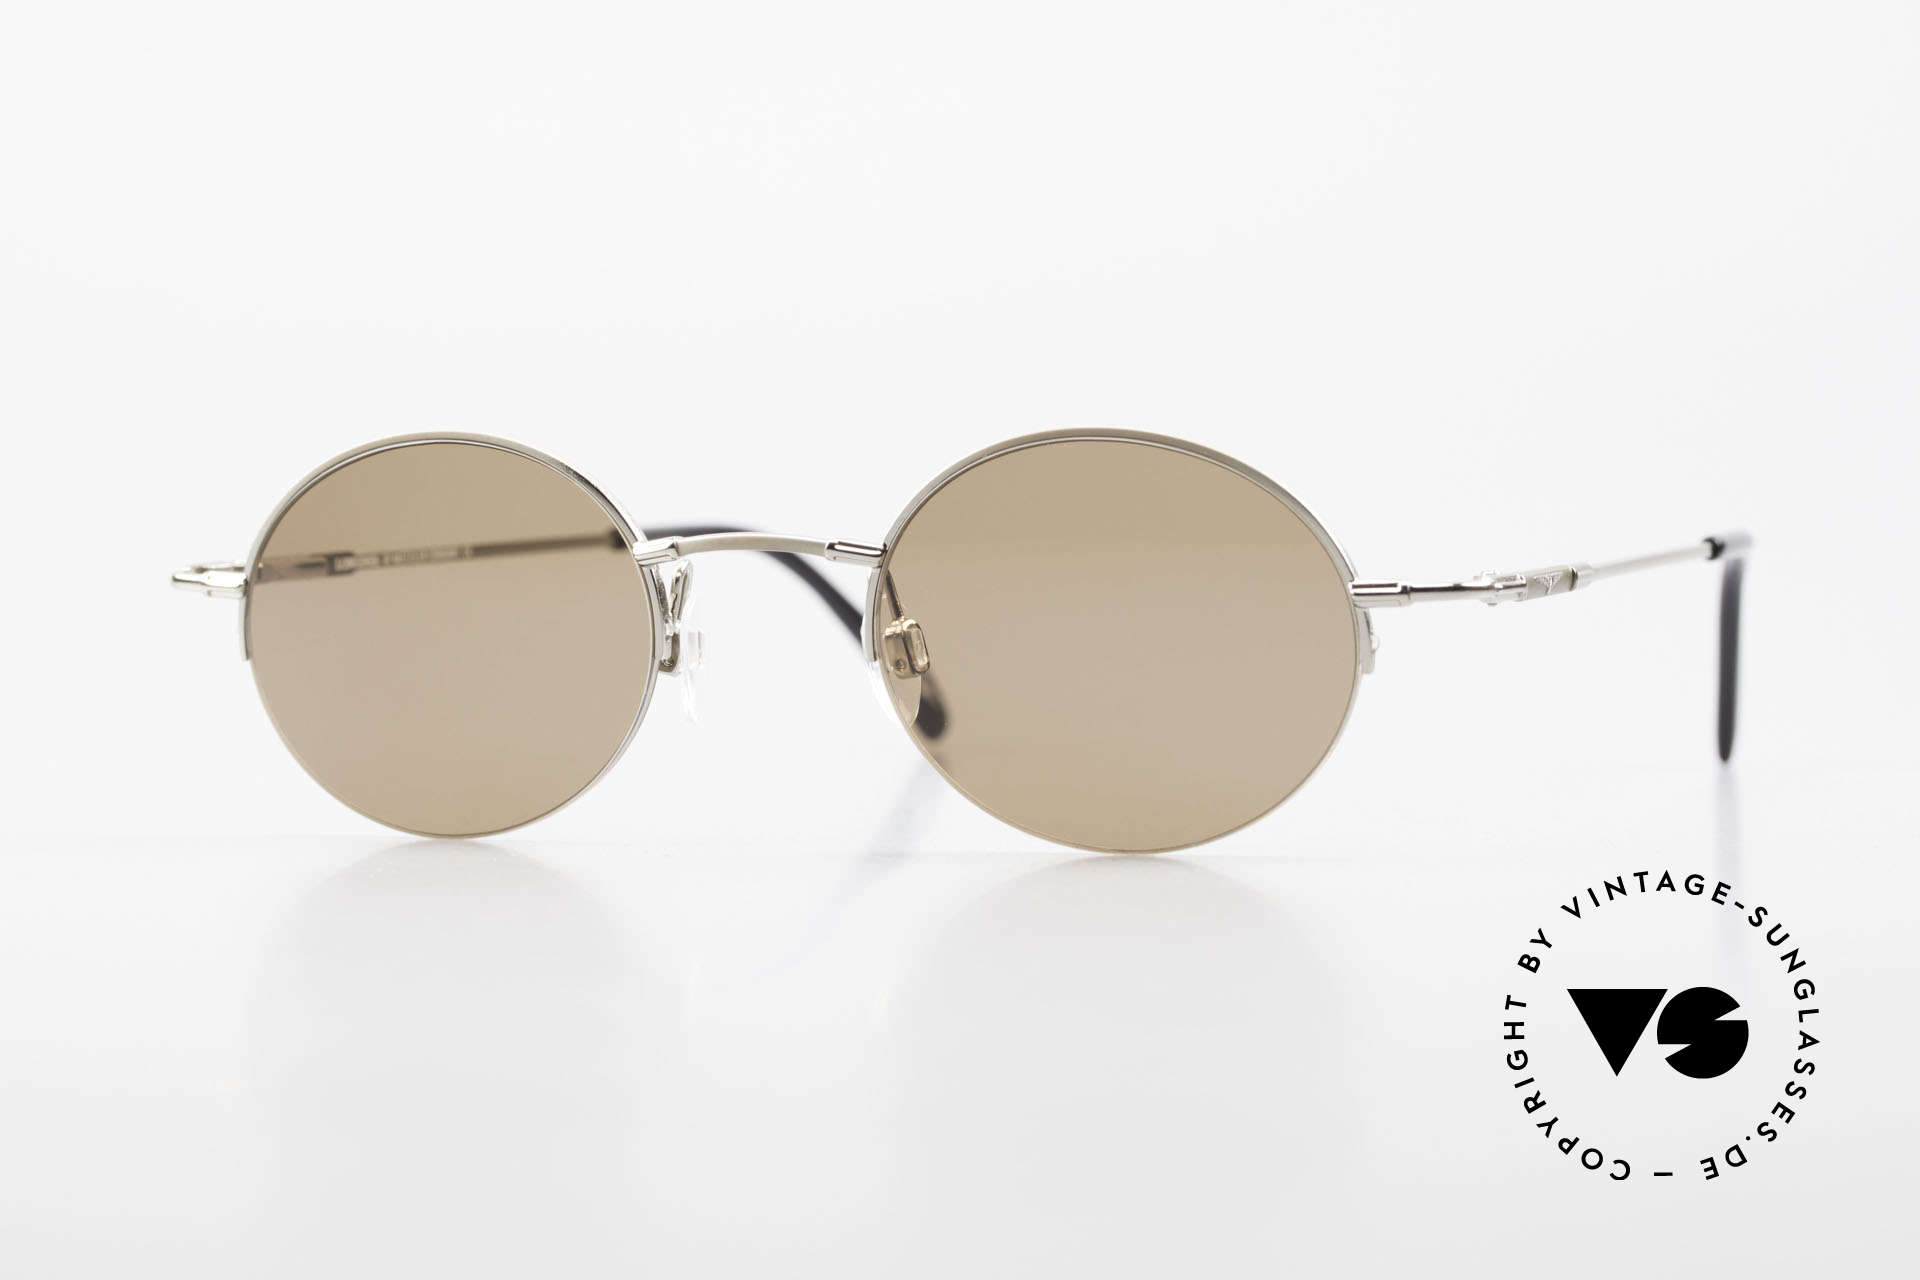 Longines 4363 Oval Sunglasses 90's Round, round oval Longines sunglasses from the late 1990's, Made for Men and Women